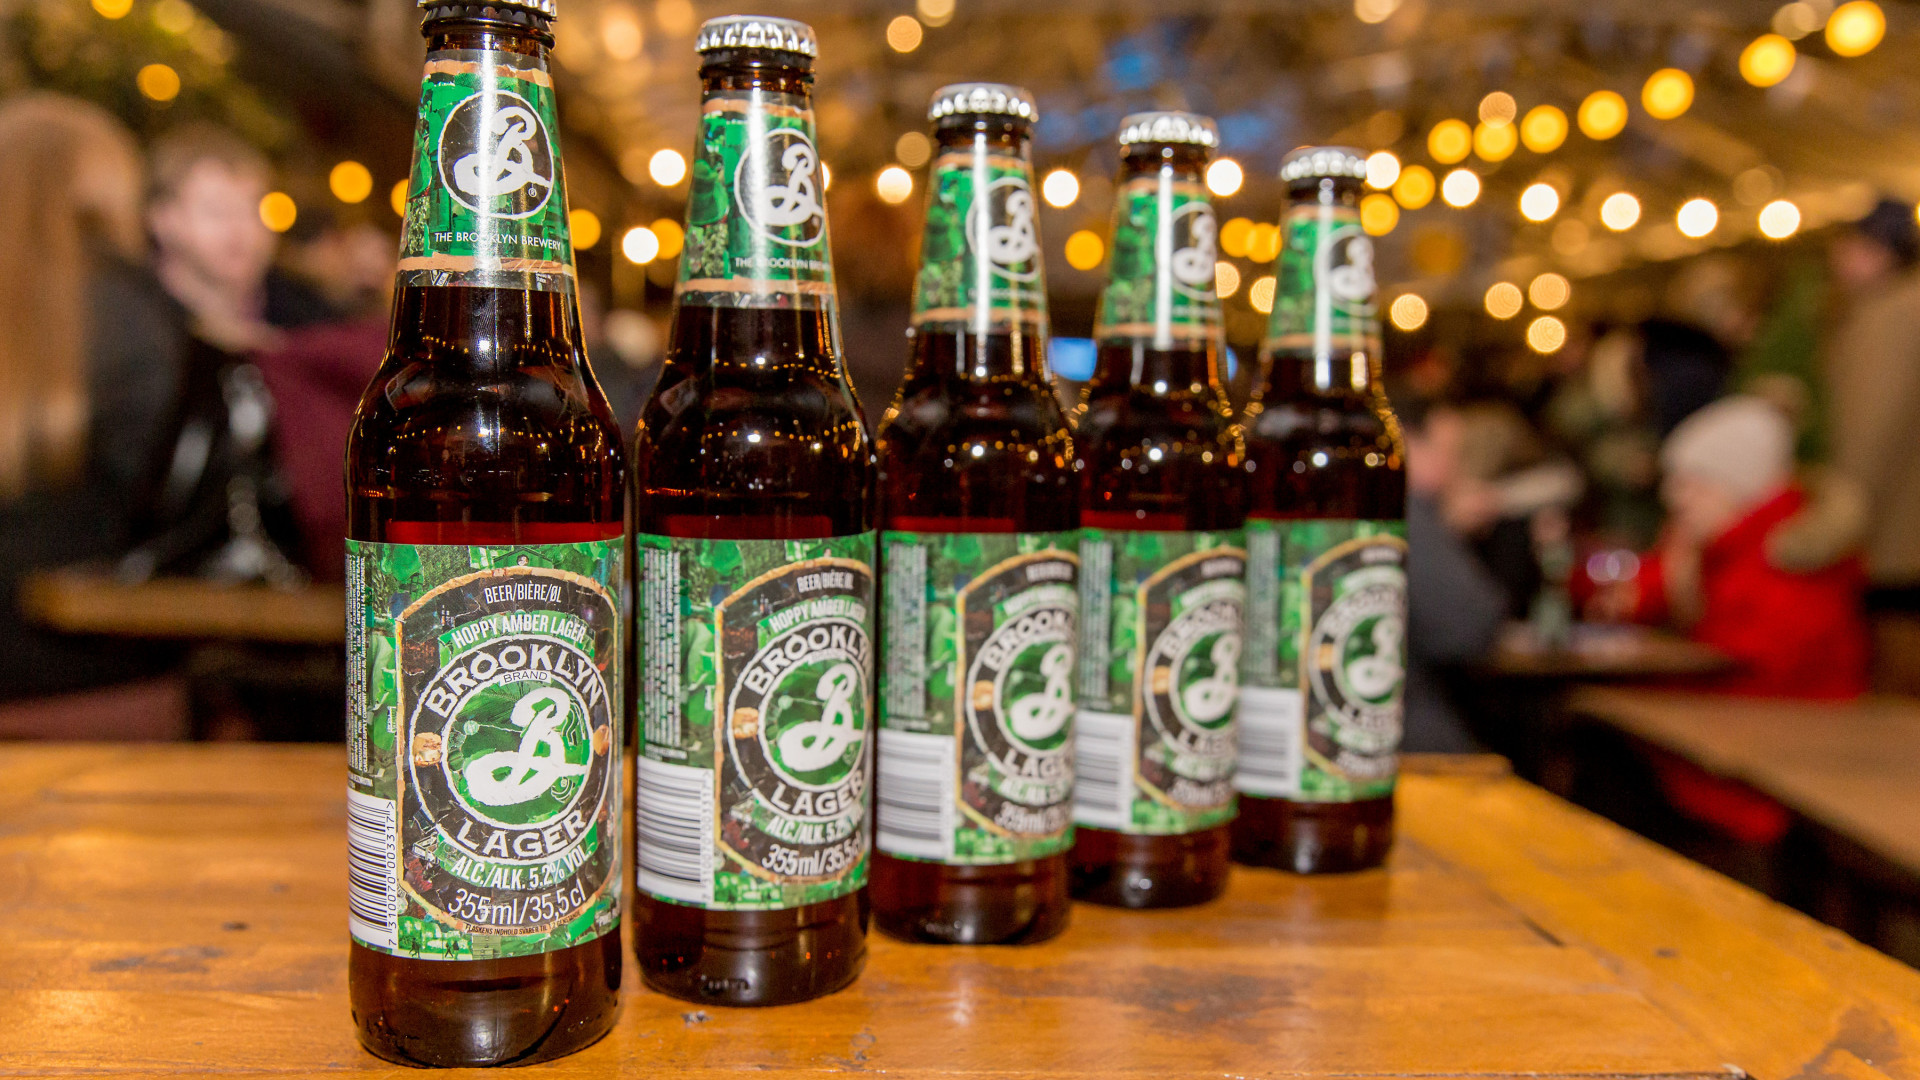 The Foodism 100 awards night 2019: Beer was provided by Brooklyn Brewery